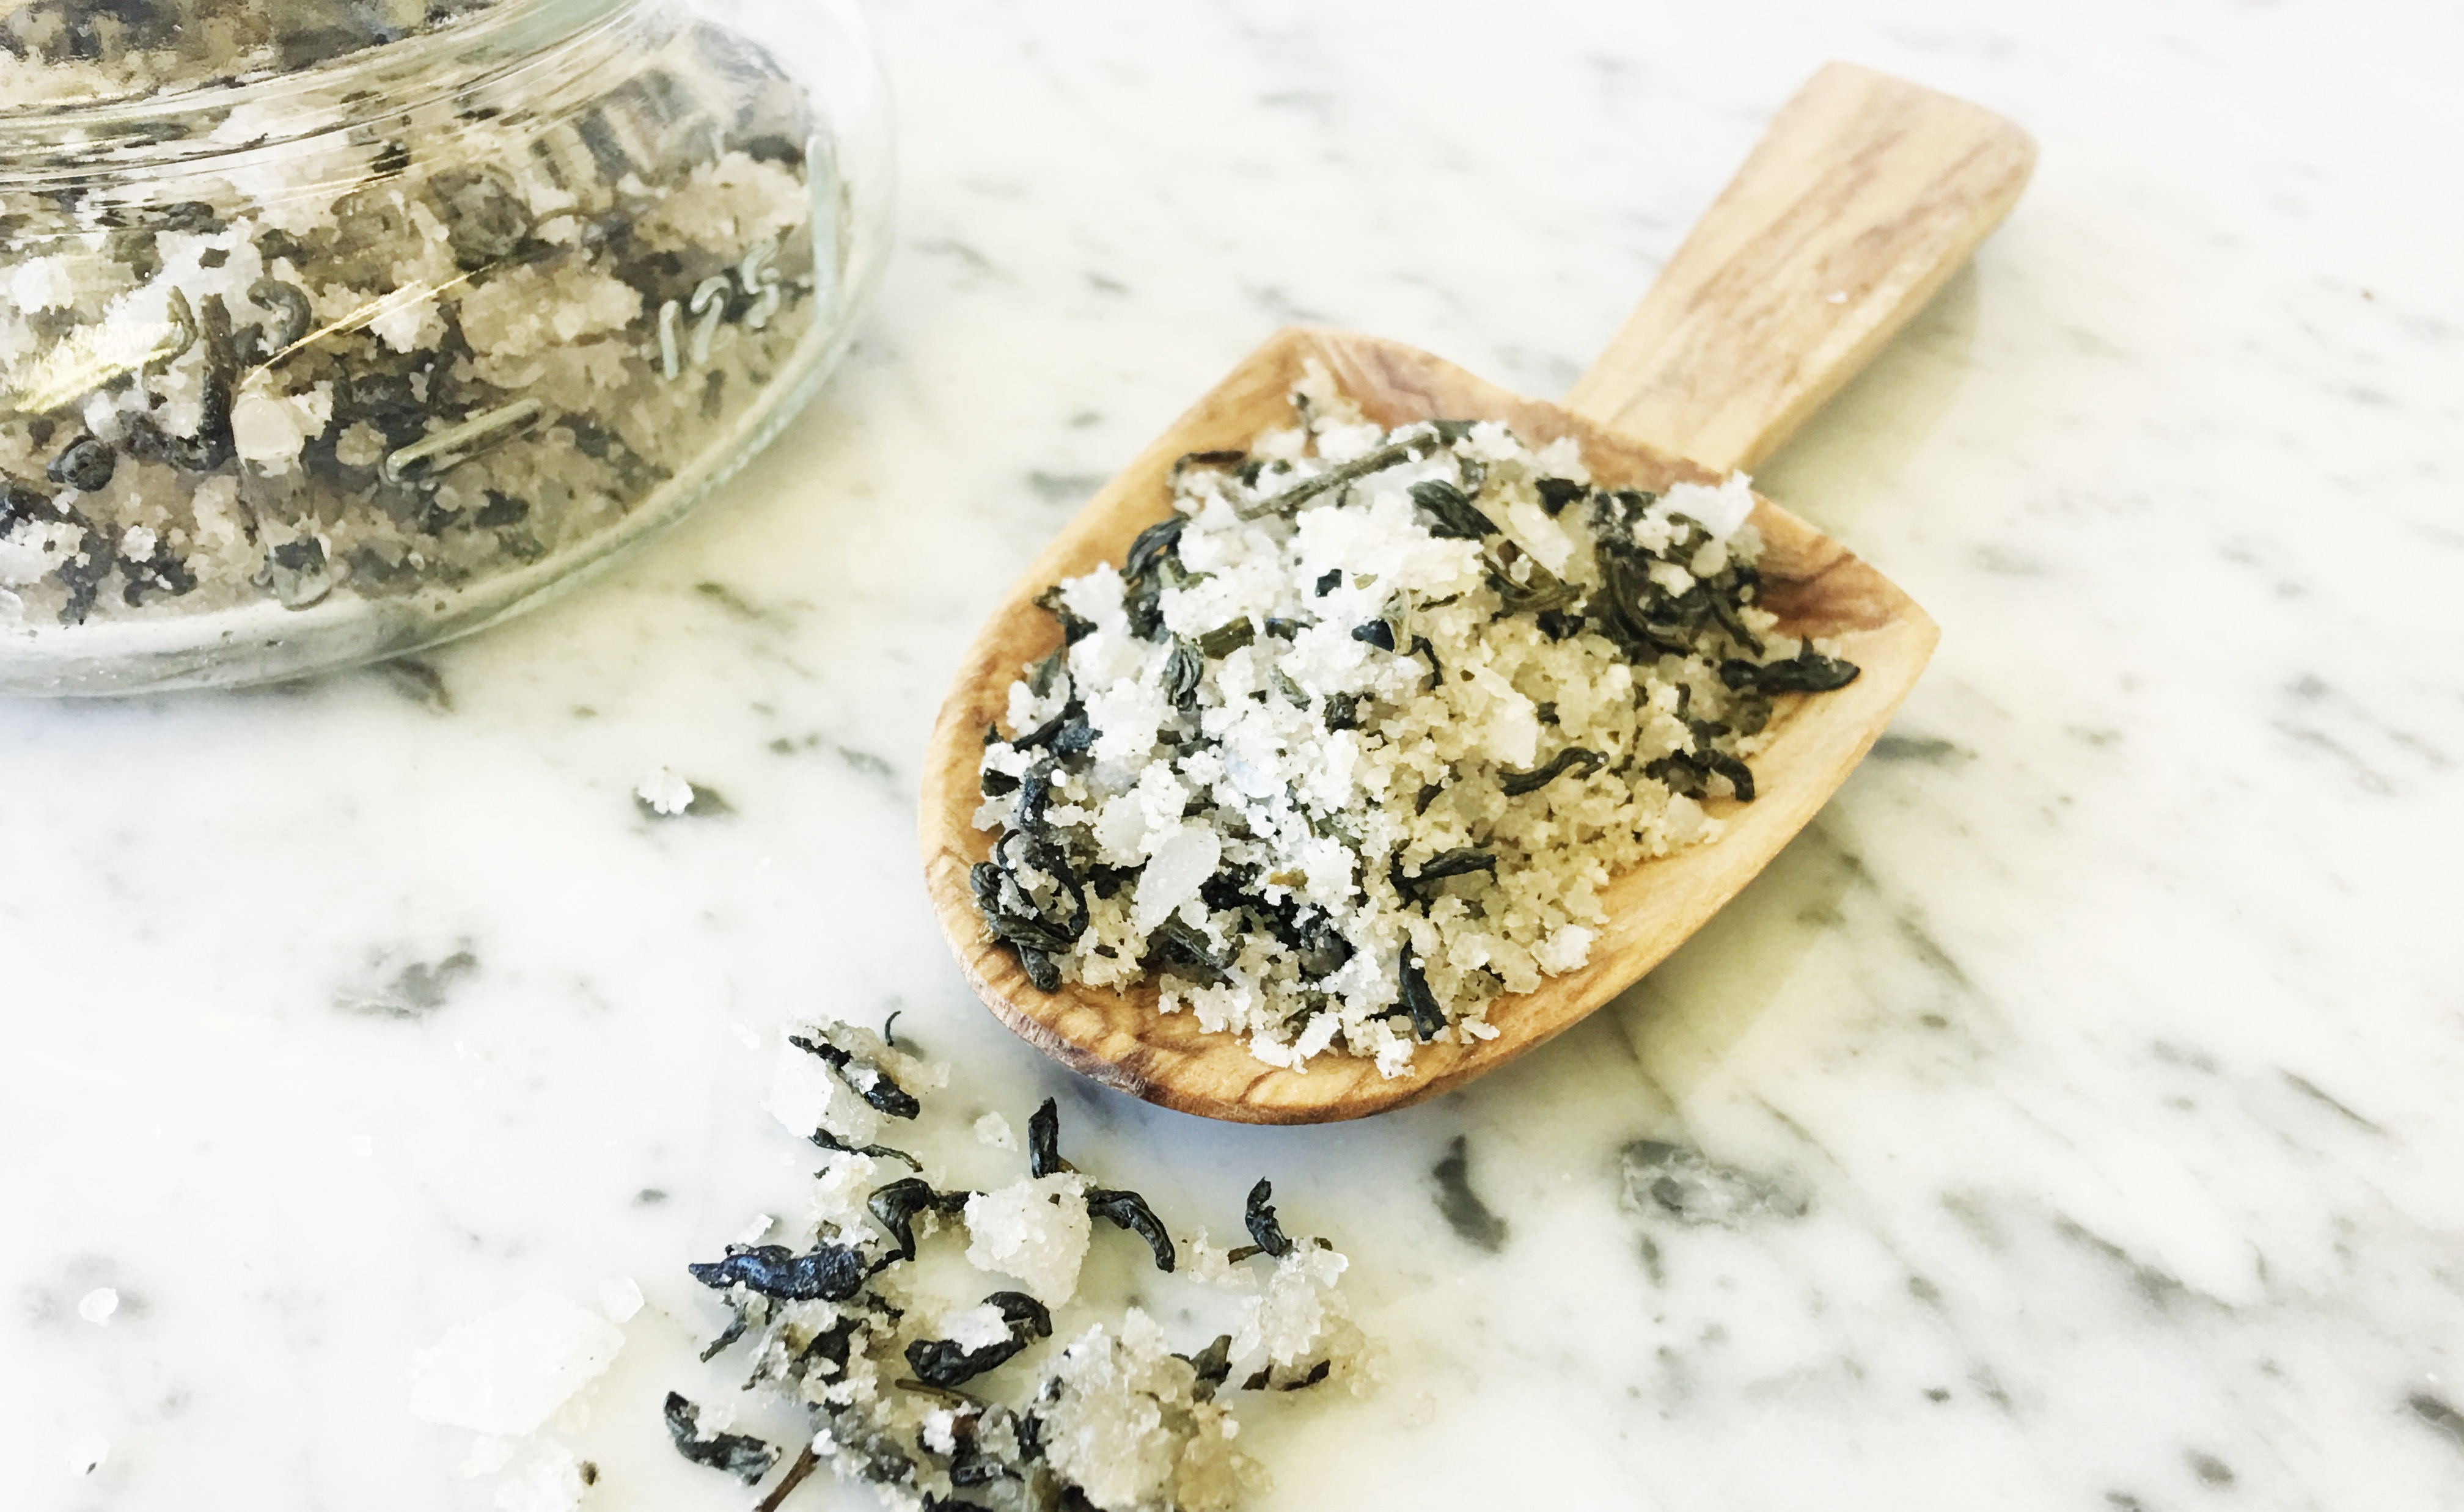 Biome Naked Beauty Bar - Revitalising peppermint foot soak with magnesium salts cooling peppermint - DIY Skin Care